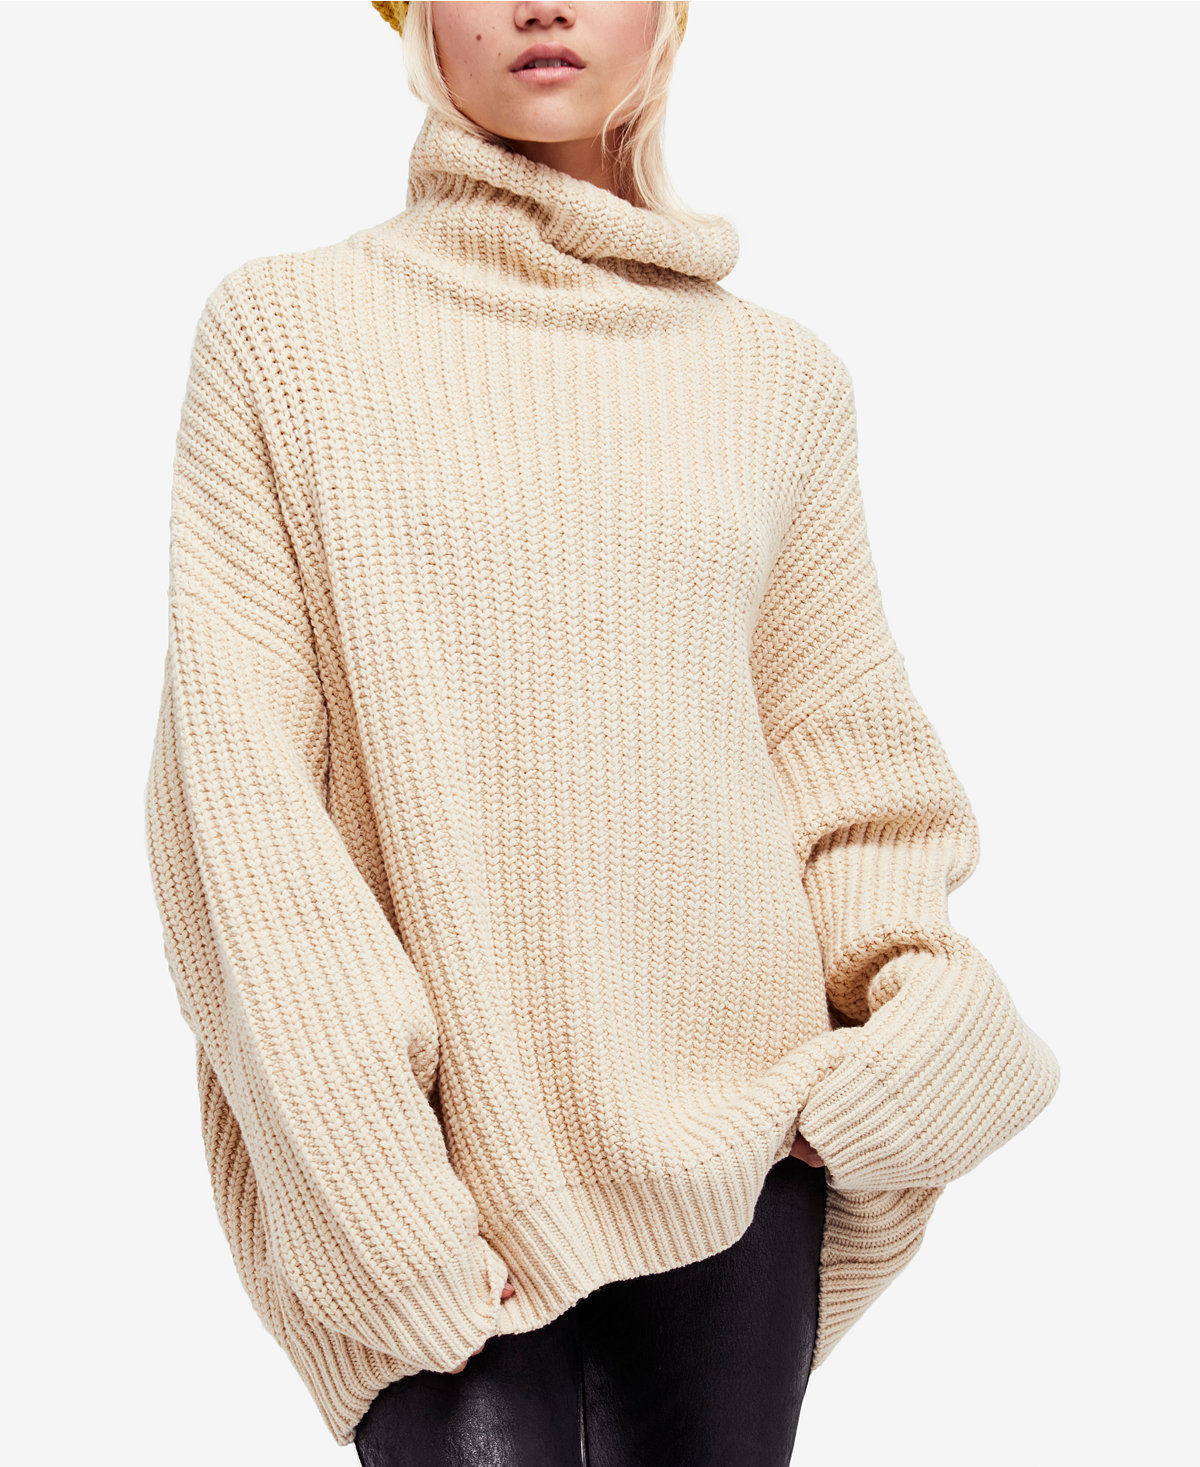 3e0092c6c5 Super-Oversized Sweaters Are This Season's Biggest Trend ...